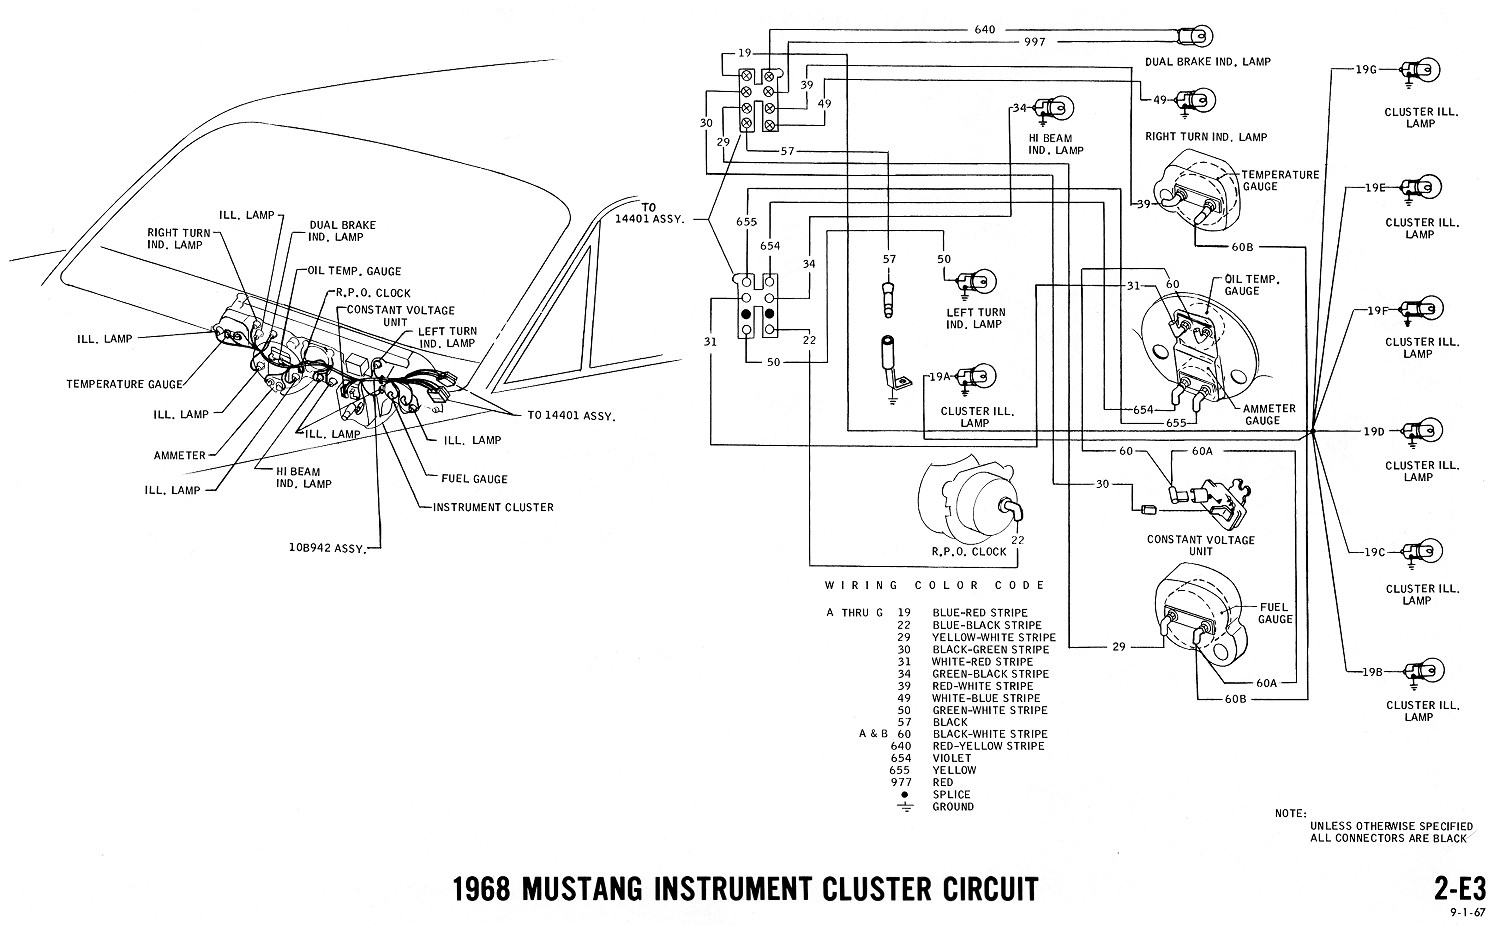 hight resolution of instrument cluster clock gauges 1968 mustang wiring diagrams